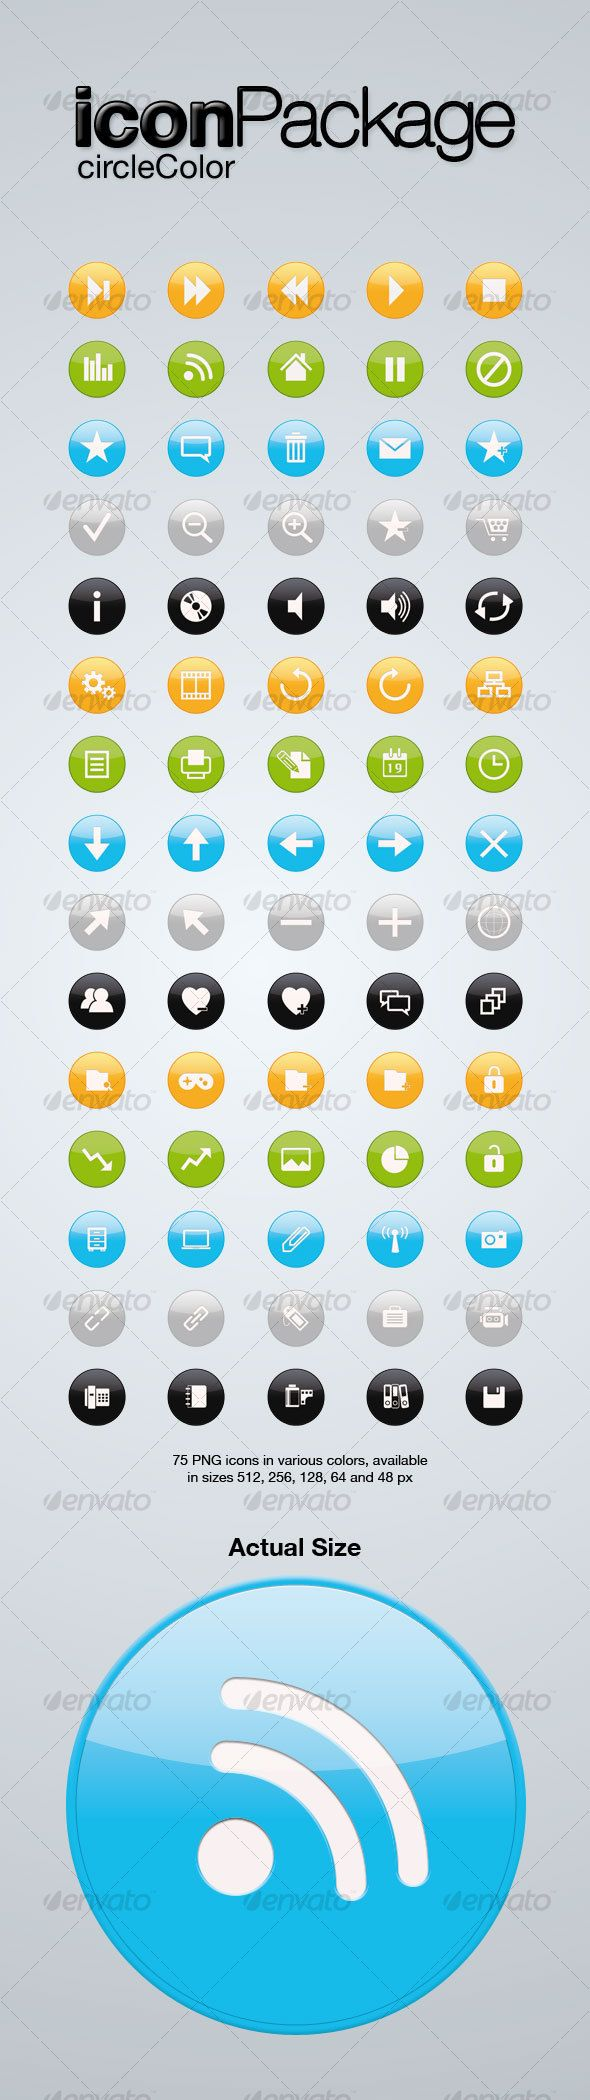 Icon Package - Web #Icons Download here: https://graphicriver.net/item/icon-package/61174?ref=alena994